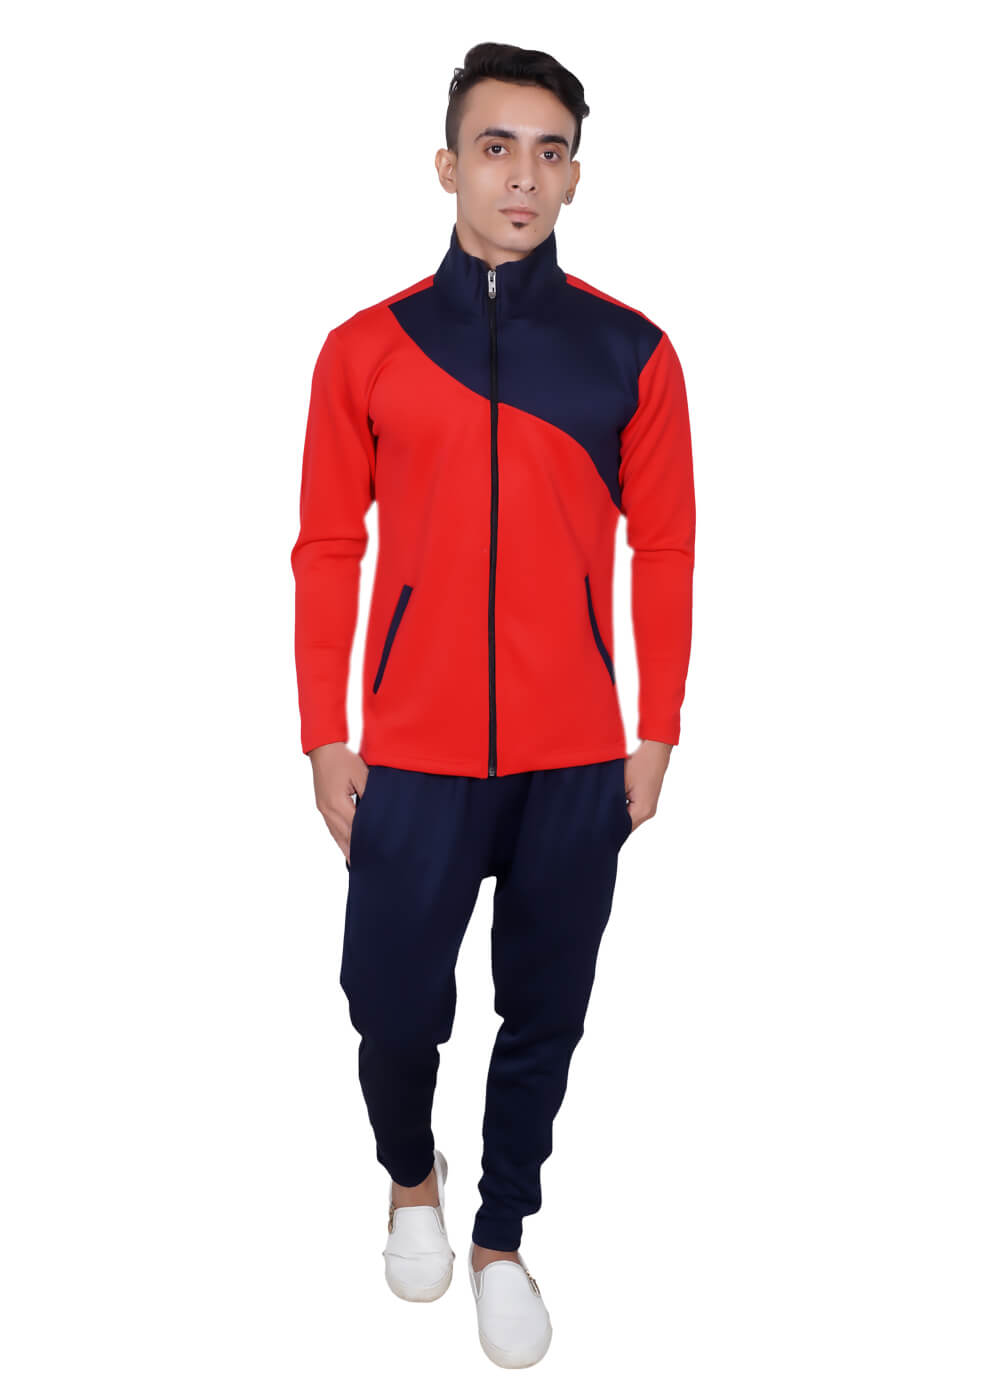 Cheap Tracksuits Manufacturers in Czech-republic